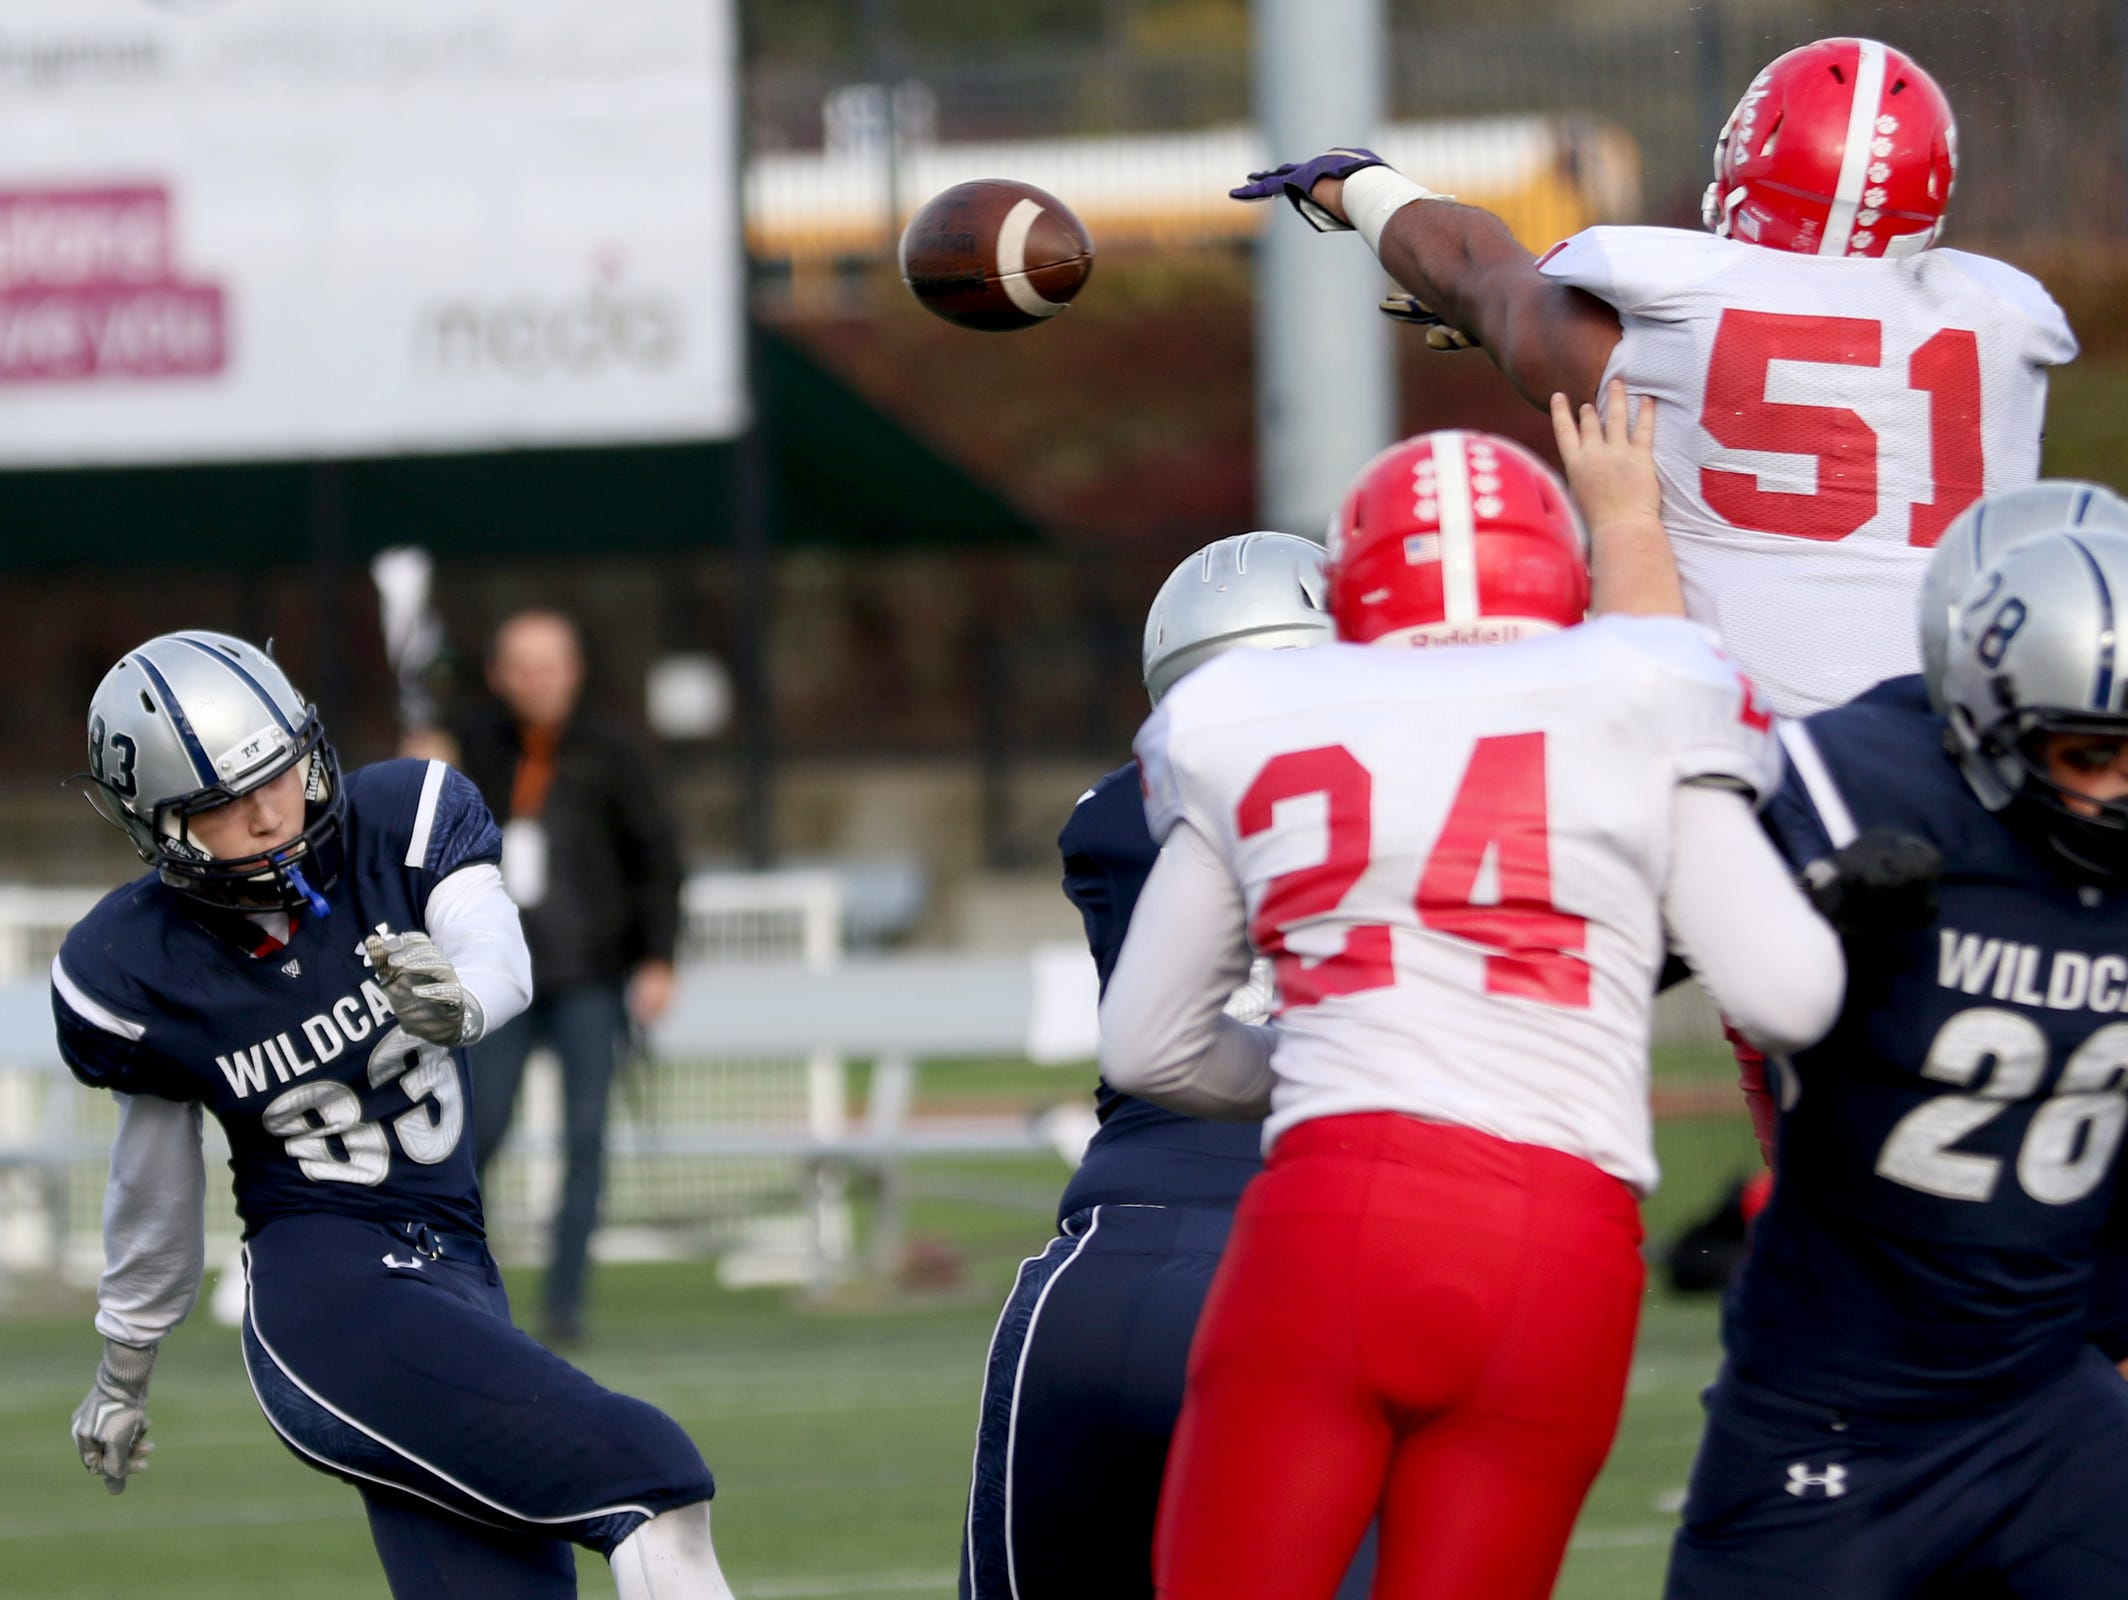 Central's Marlon Tuipulotu (51) blocks a Wilsonville field goal attempt in the second half of the Central vs. Wilsonville OSAA Class 5A semifinal football game at Hillsboro Stadium on Saturday, Nov. 19, 2016. Wilsonville won the game 56-34.